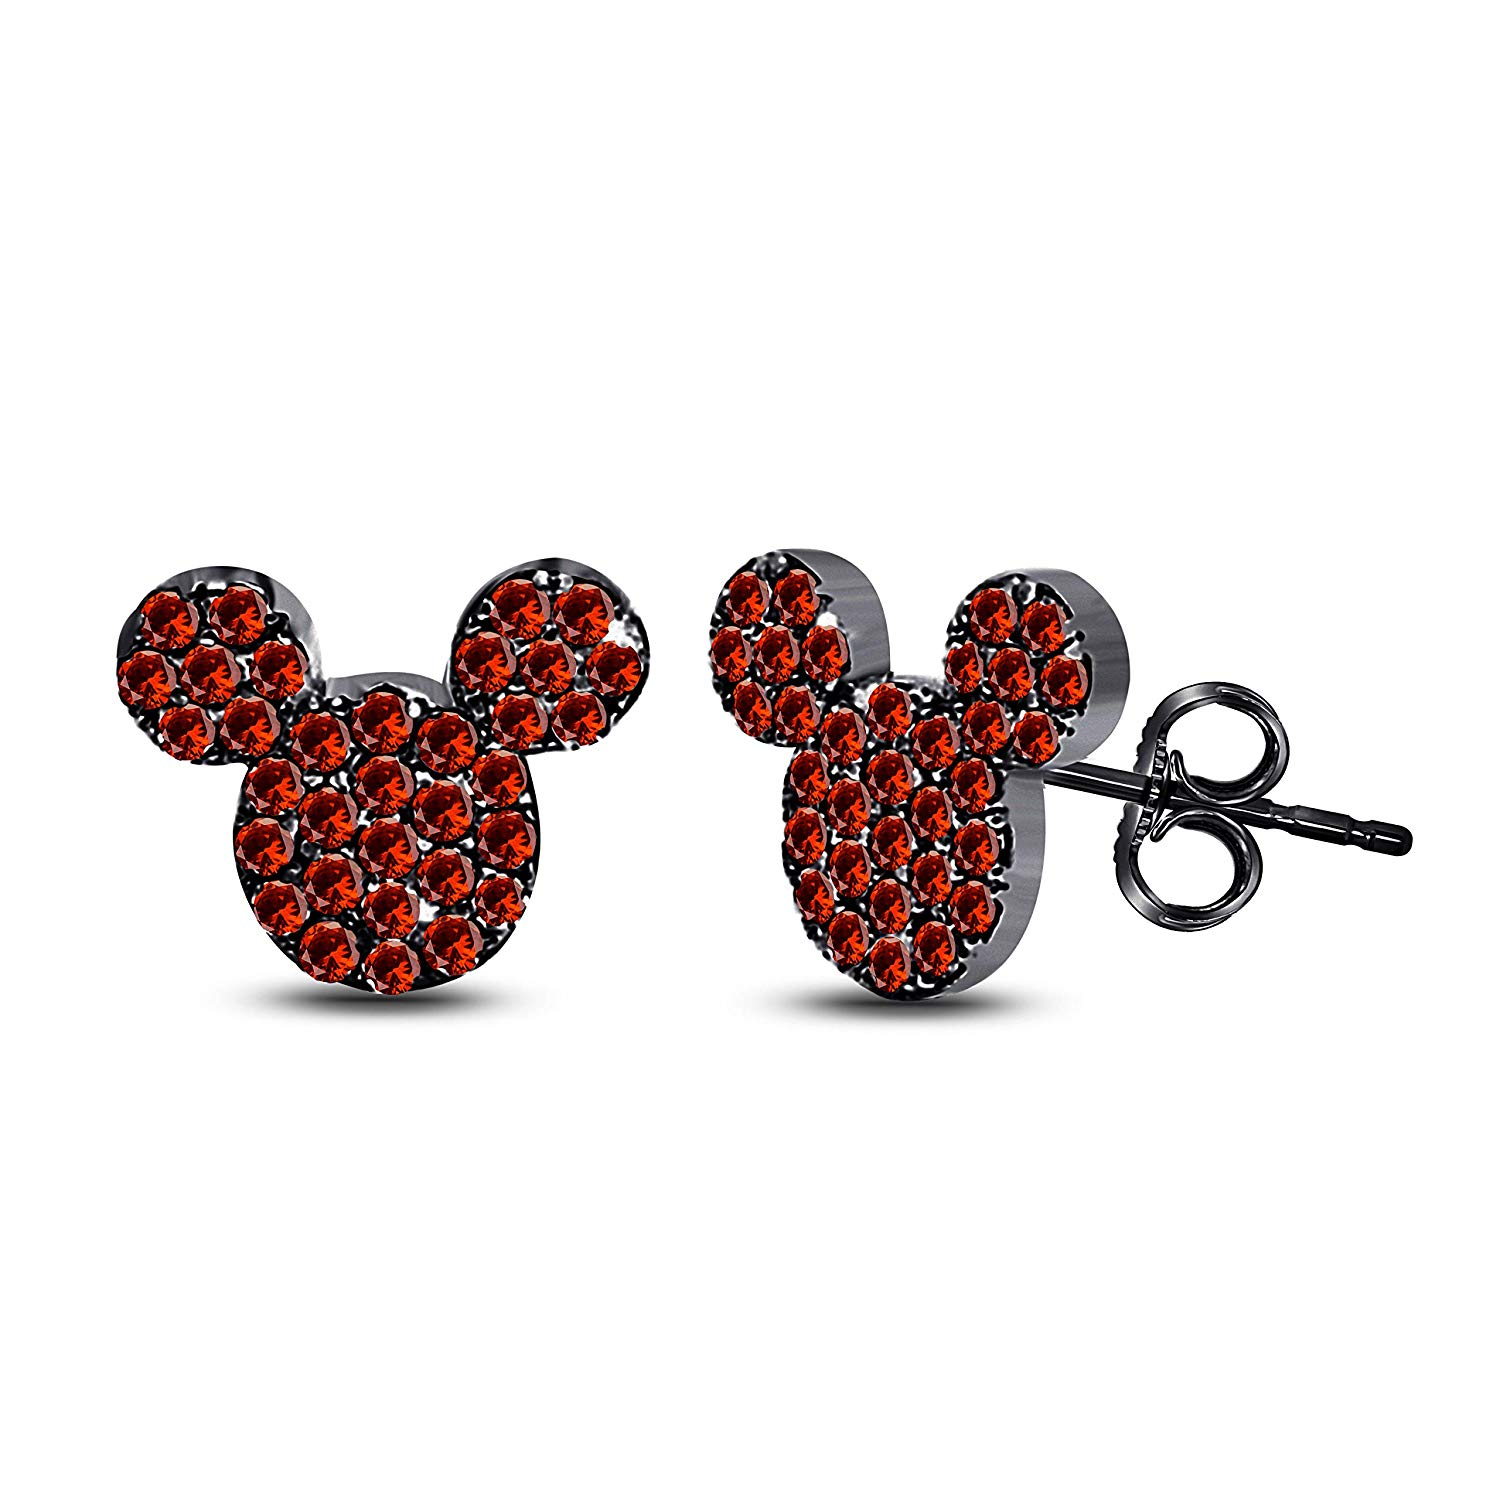 9039dbc3a Get Quotations · Tiny Cute Micky Mouse 925 Sterling Silver 14k Black Gold  Plated Stud Earrings with Fashion Red